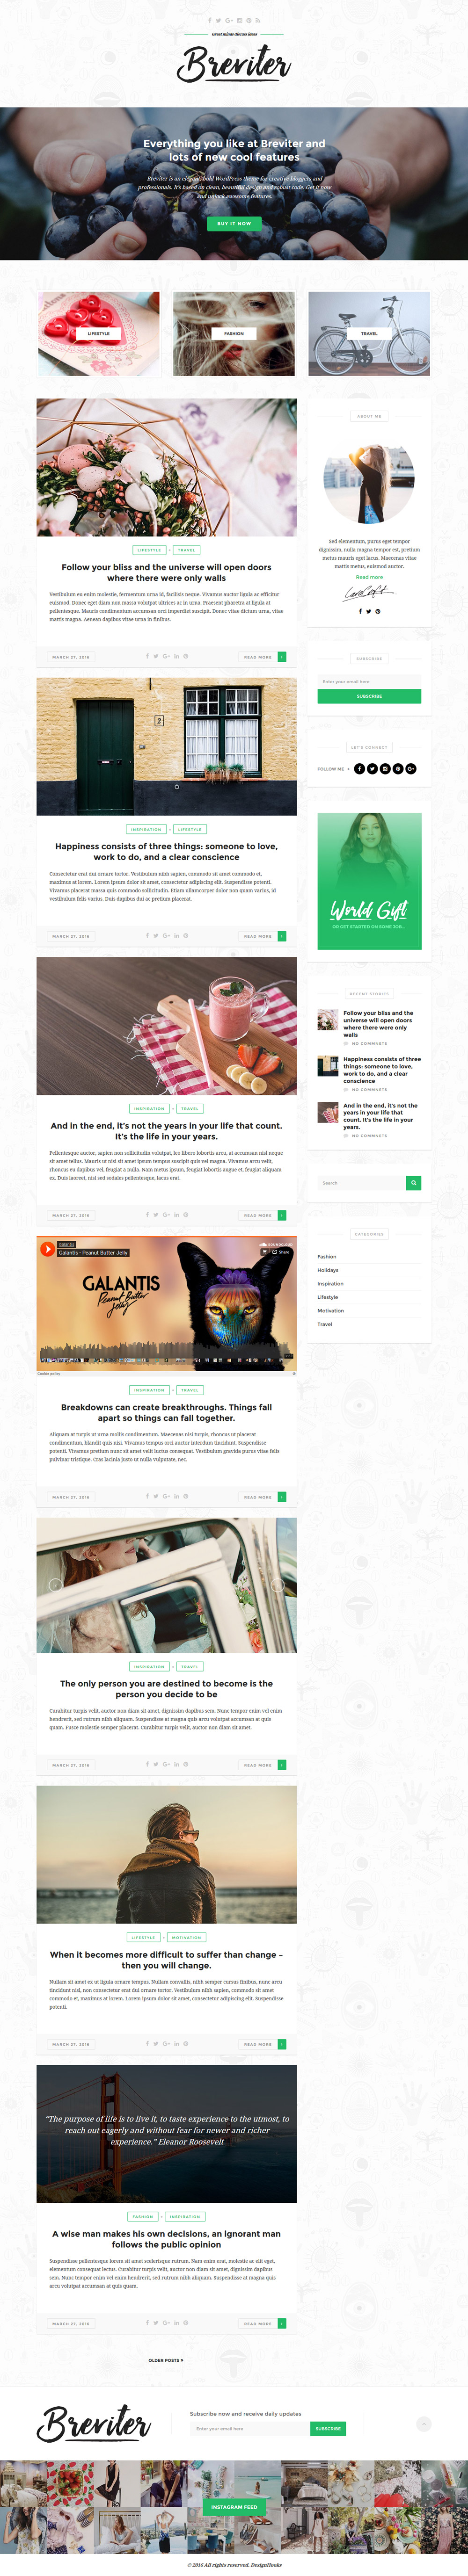 Breviter: WordPress Blog PSD Templates